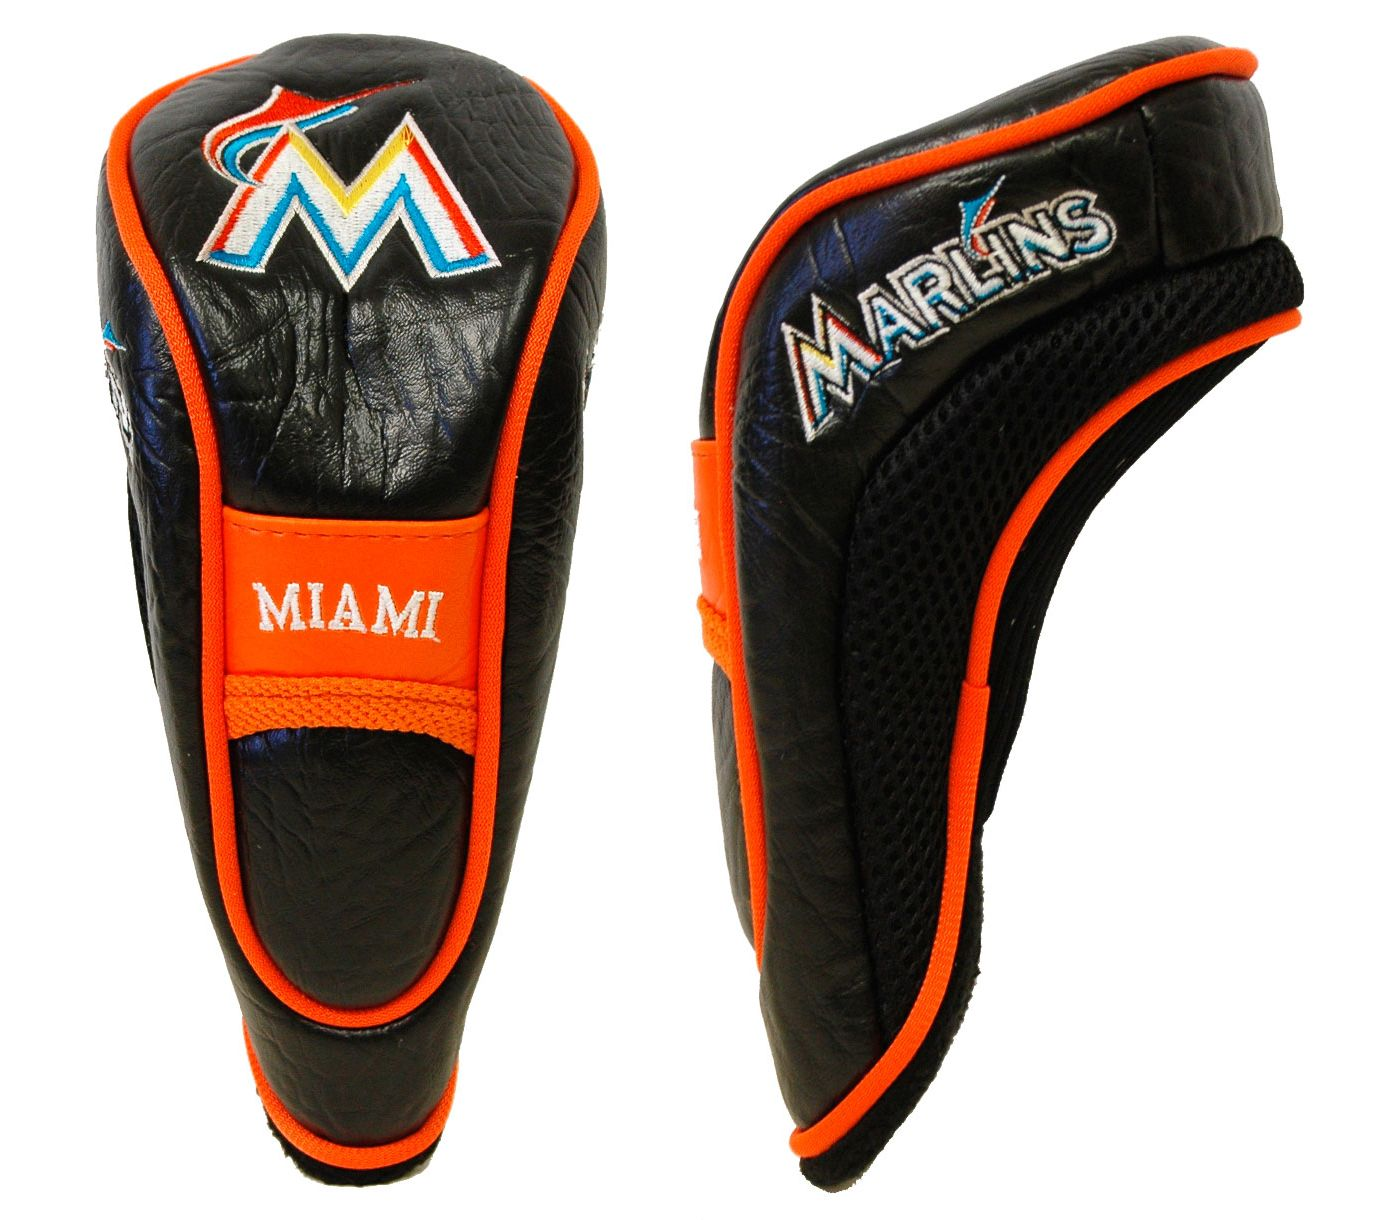 Team Golf Miami Marlins Hybrid Headcover